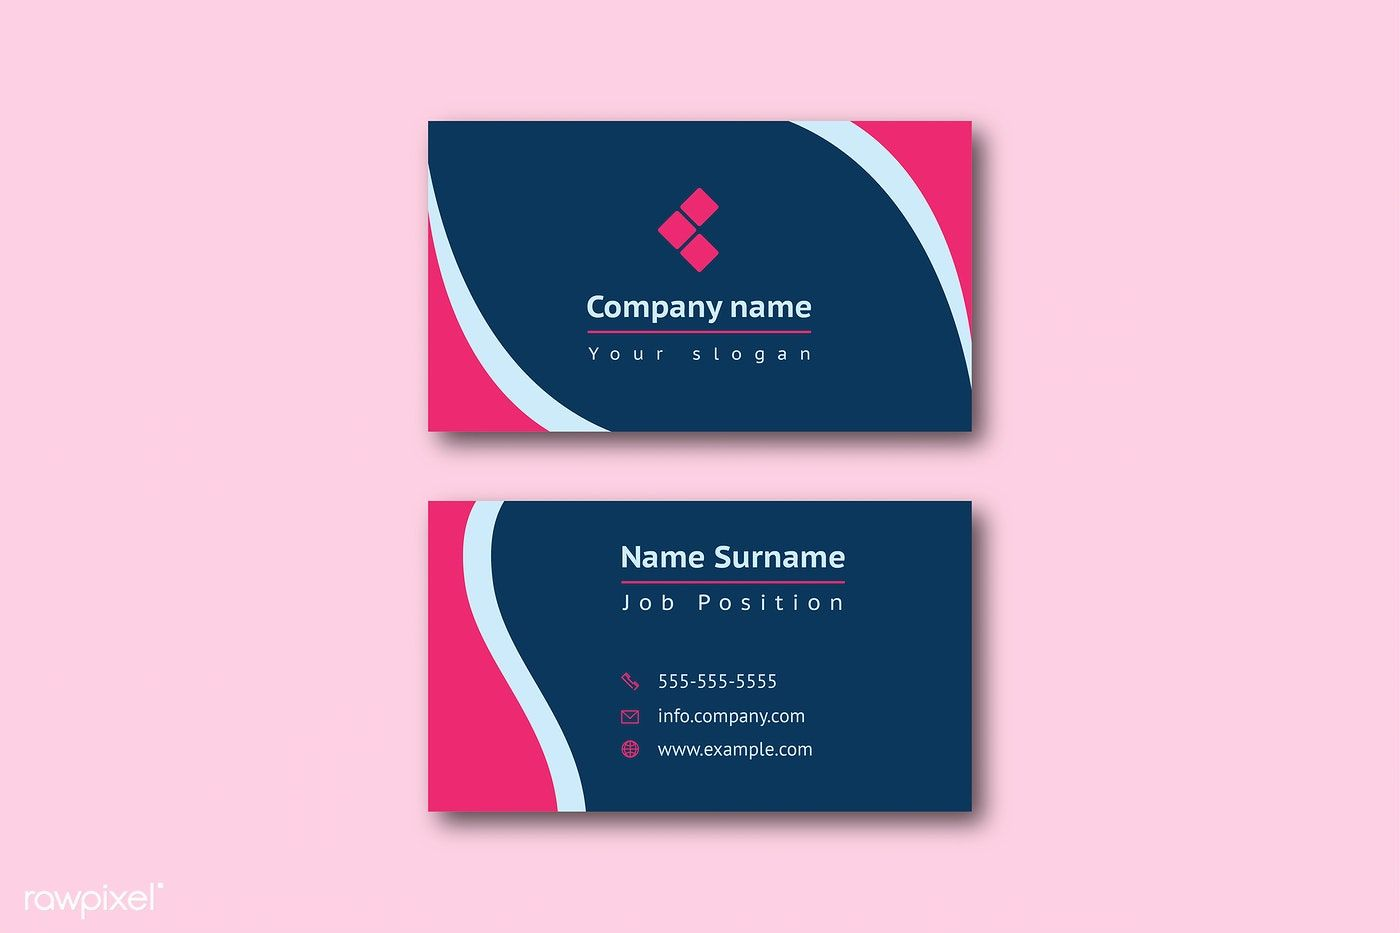 Business Card Template Front And Back Vector Free Image By Rawpixel Com Jan In 2021 Business Card Template Card Template Vector Free